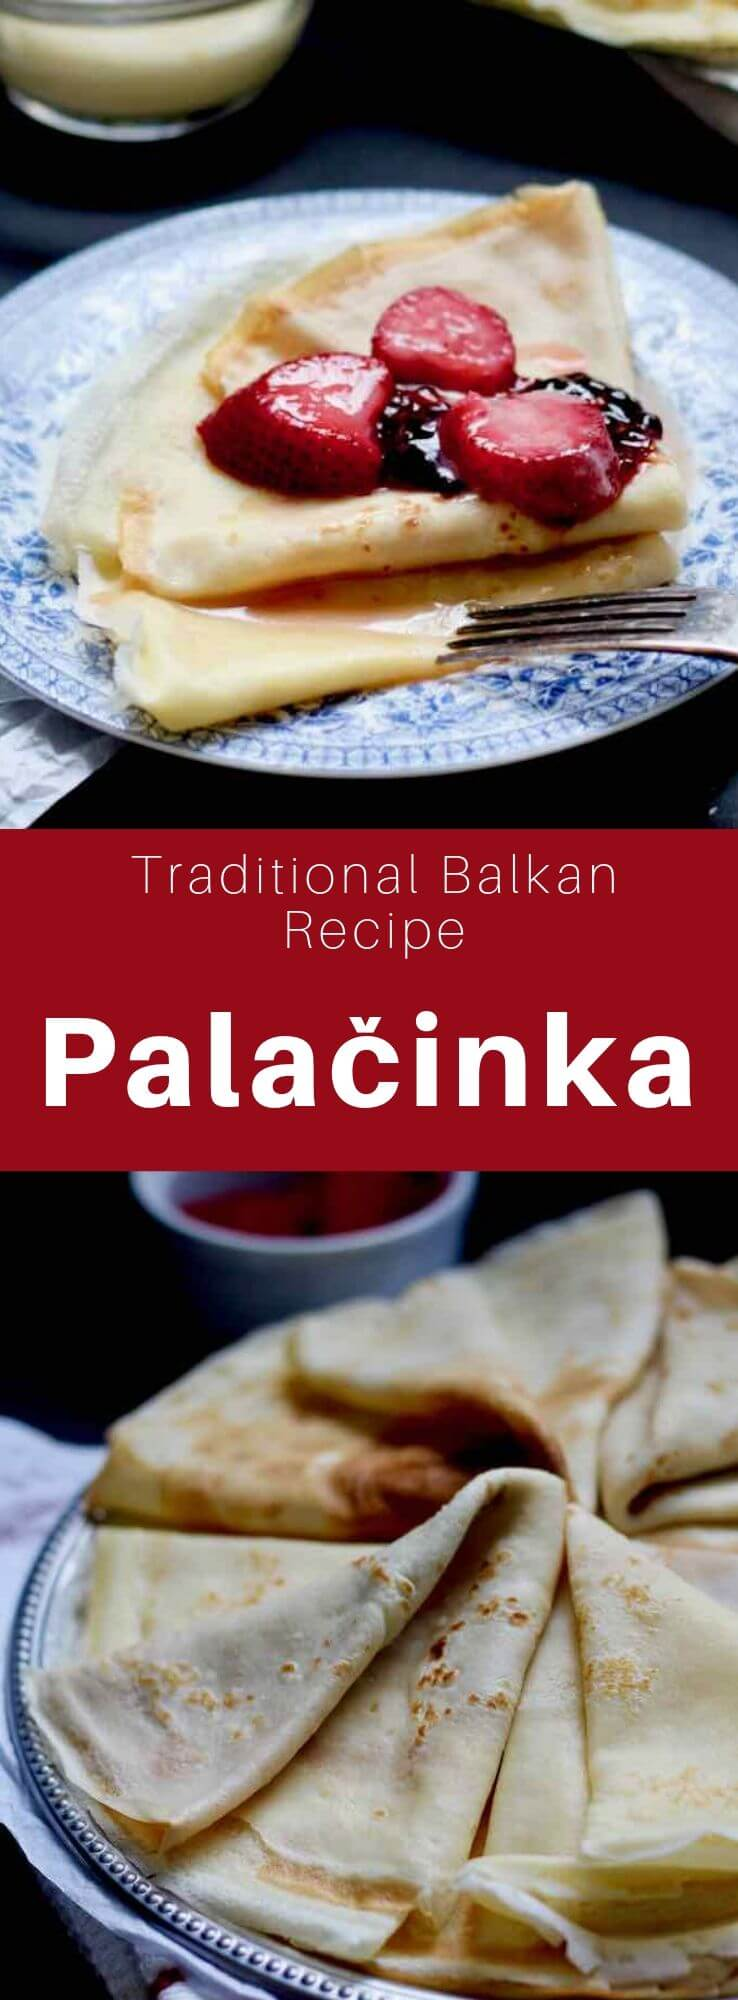 A palačinka is a variety of thin crepe of Greek and Roman origins that is popular in Central and Eastern Europe. #Macedonia #Balkans #WorldCuisine #196flavors